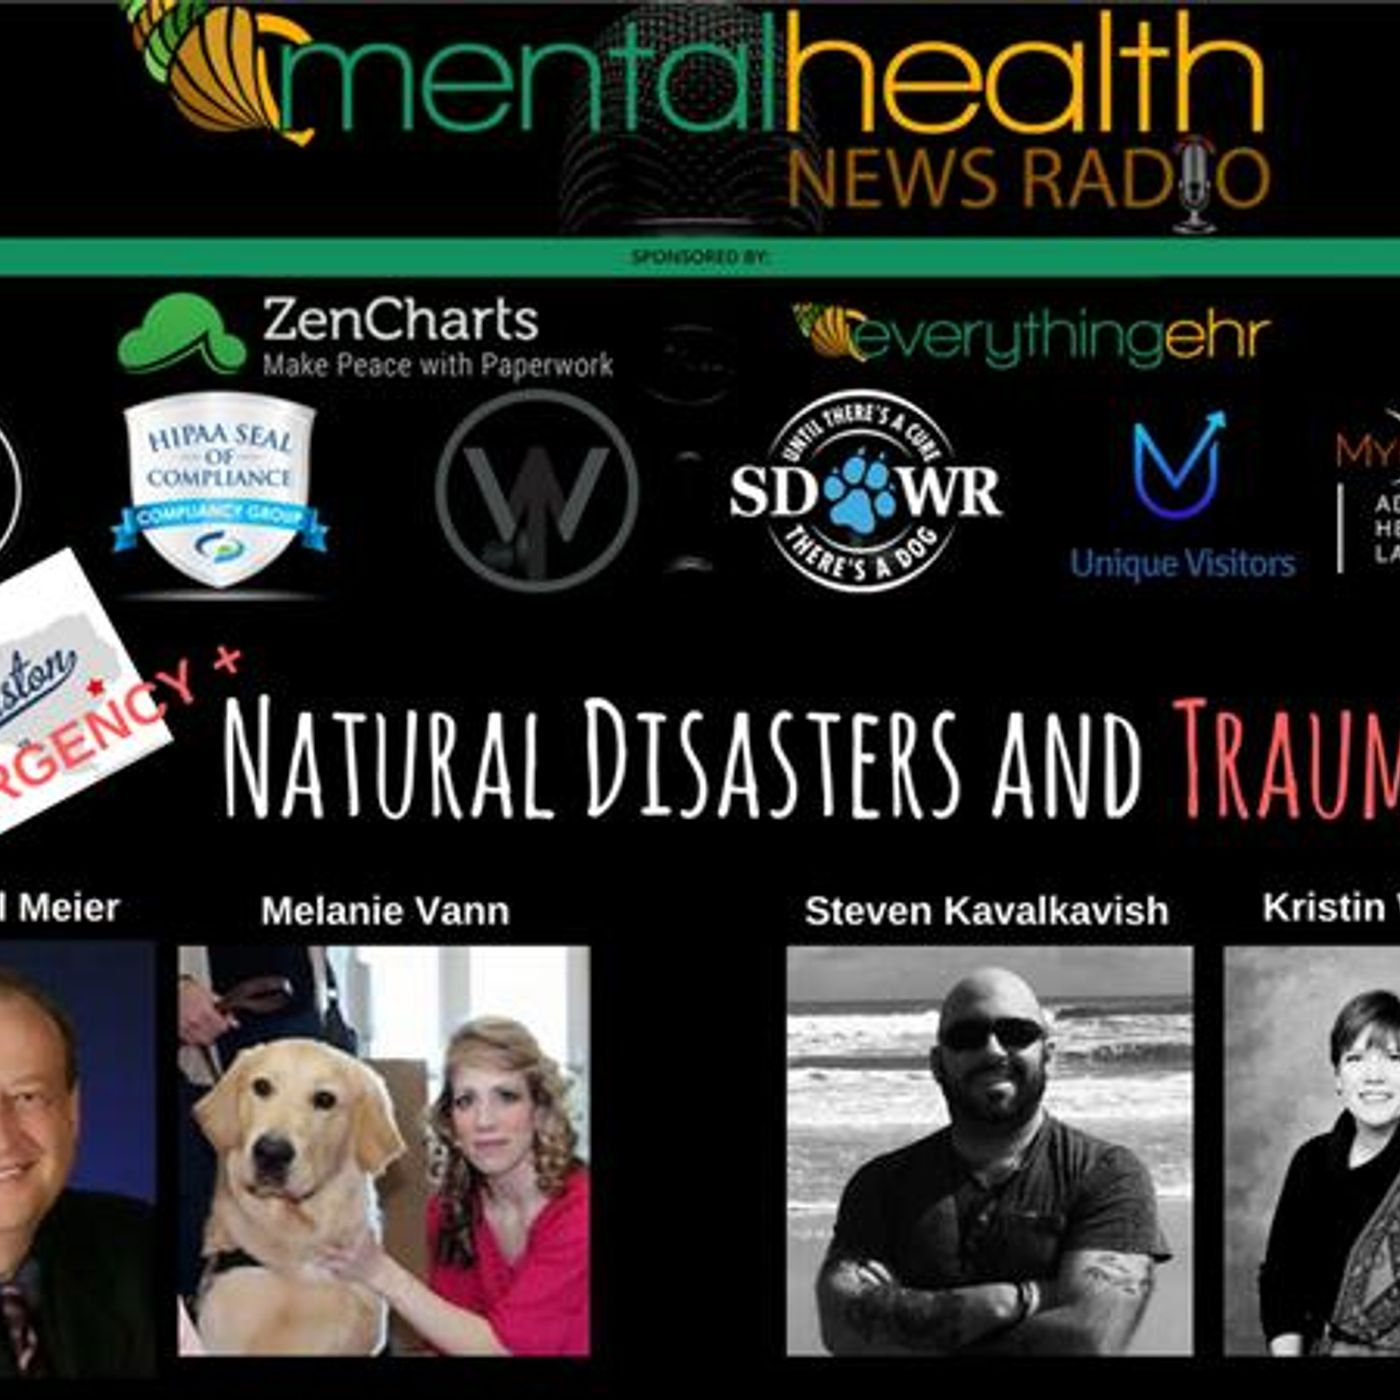 Mental Health News Radio - Round Table Discussions with Dr. Paul Meier: Natural Disasters and Trauma